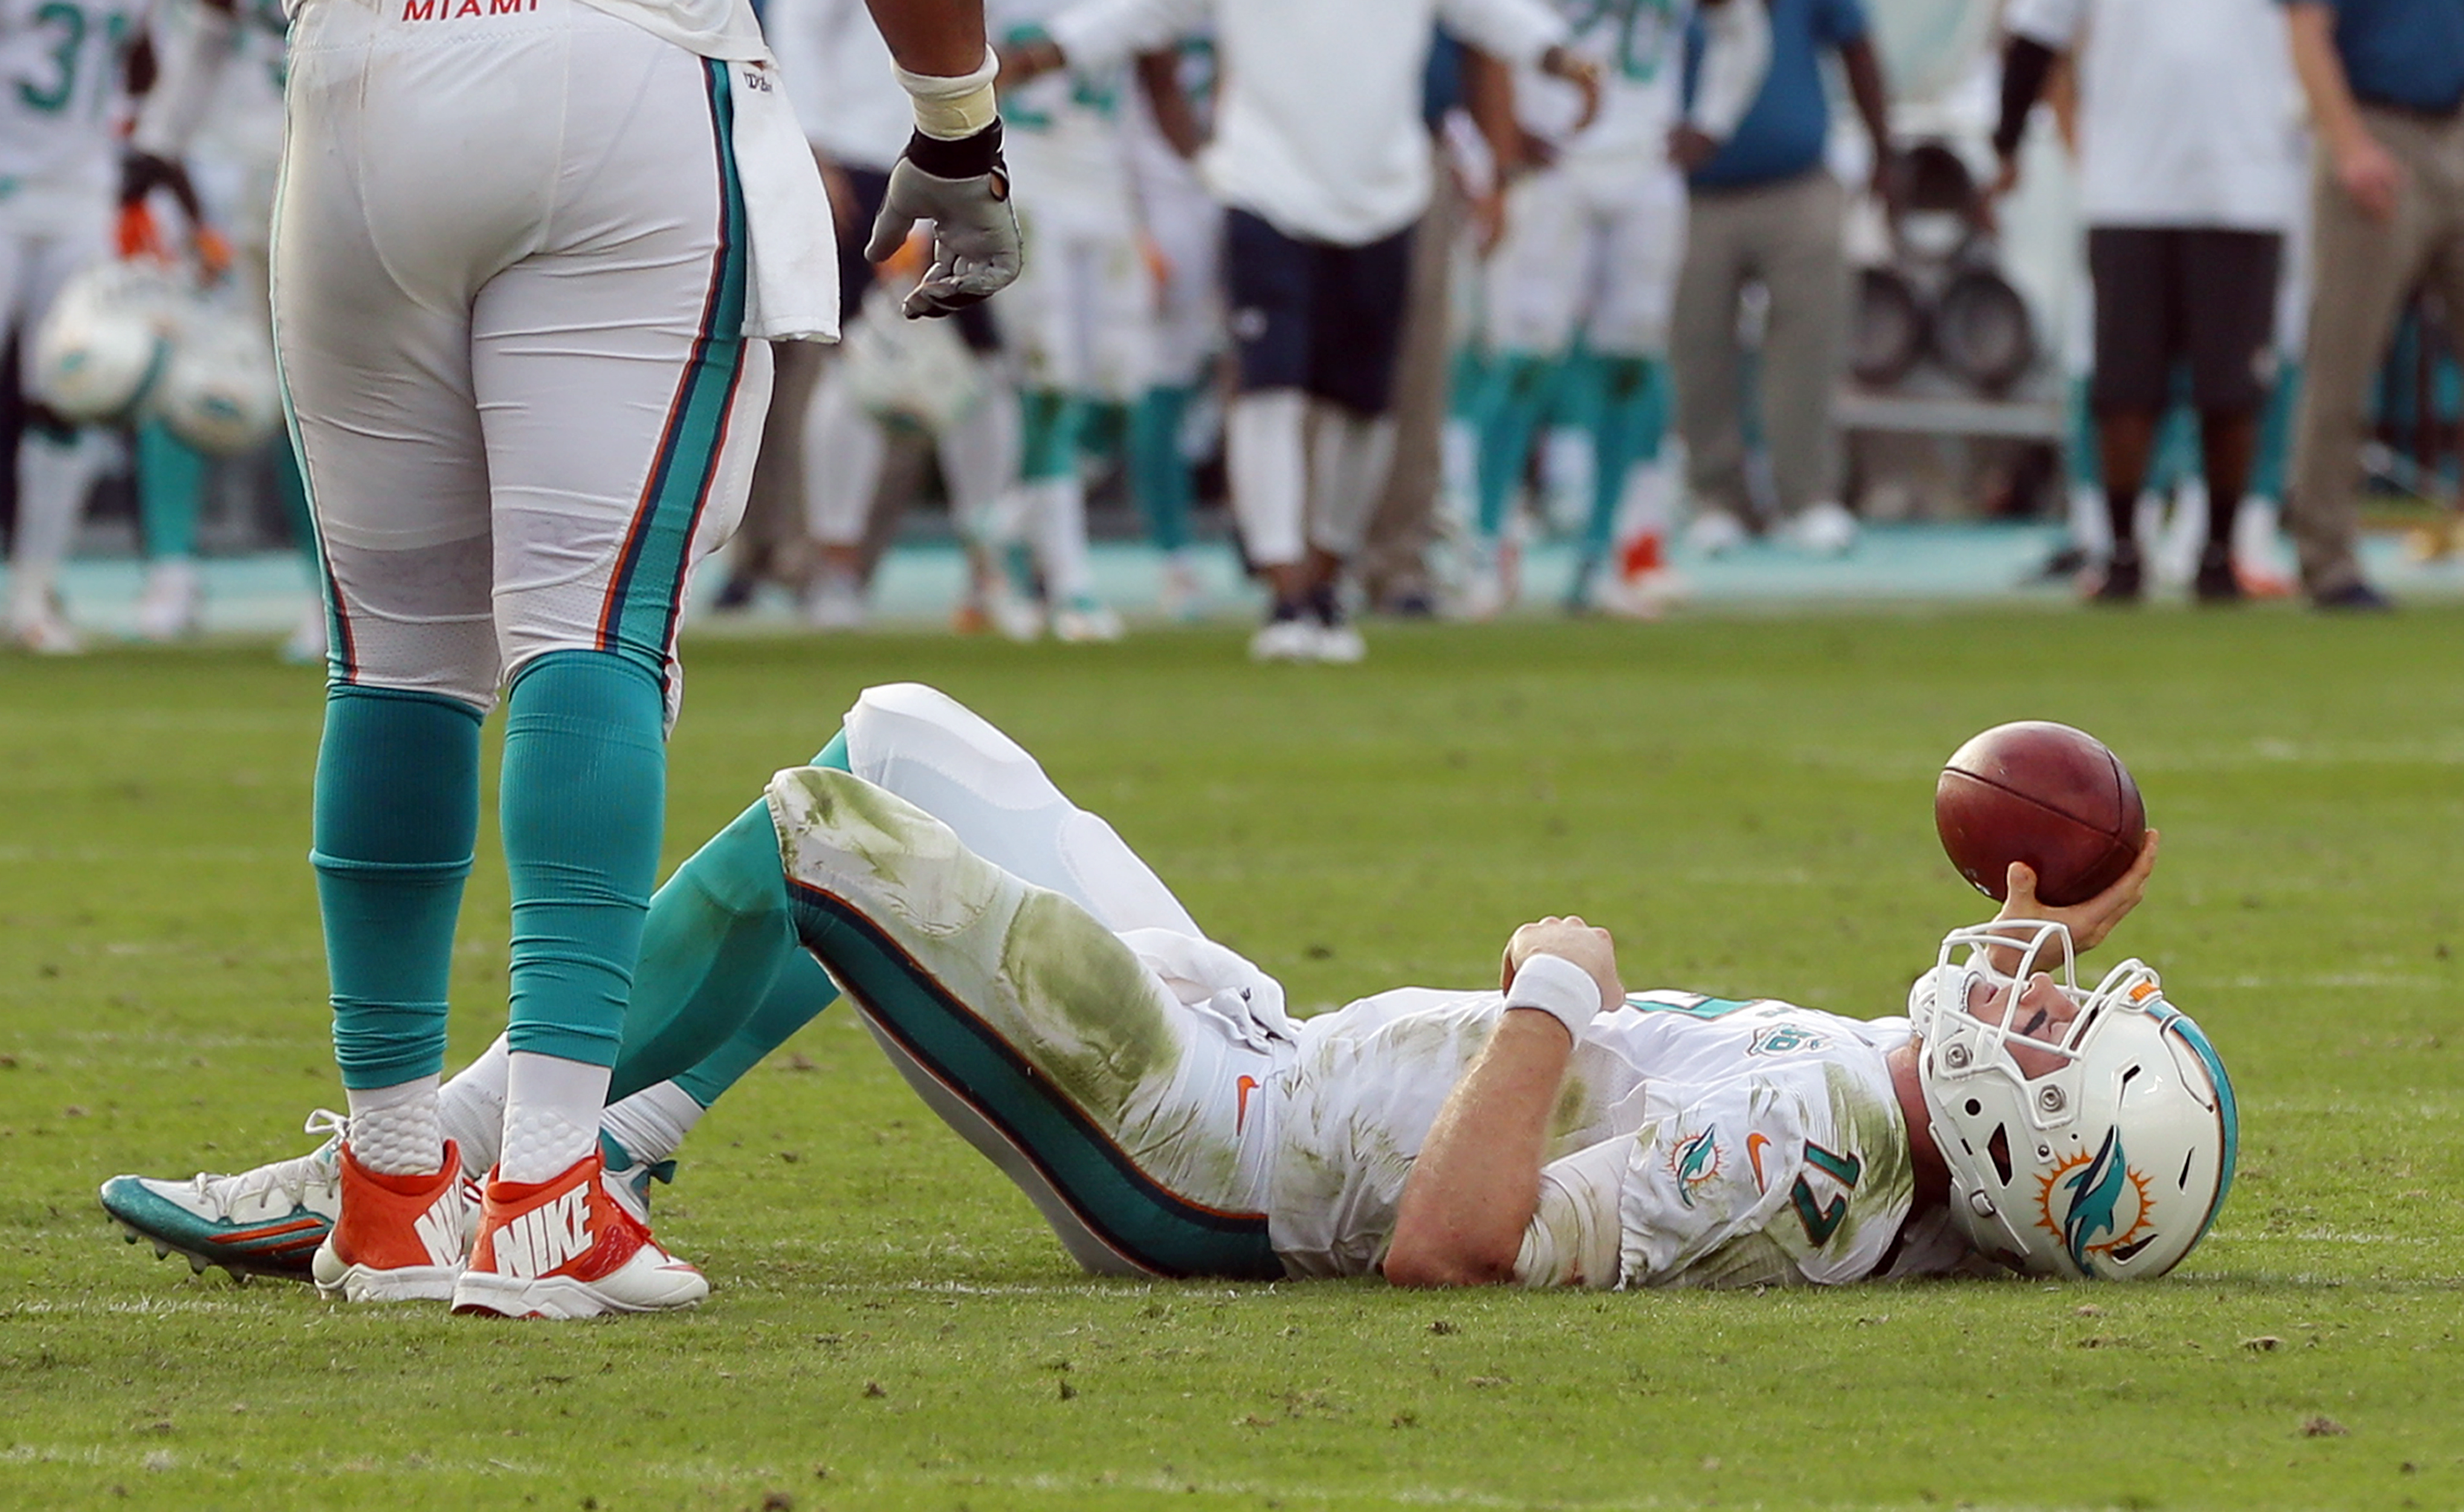 Miami Dolphins quarterback Ryan Tannehill (17) lies on the field after a sack during the final seconds of the second half of an NFL football game against the Indianapolis Colts, Sunday, Dec. 27, 2015, in Miami Gardens, Fla. The Colts defeated the Dolphins